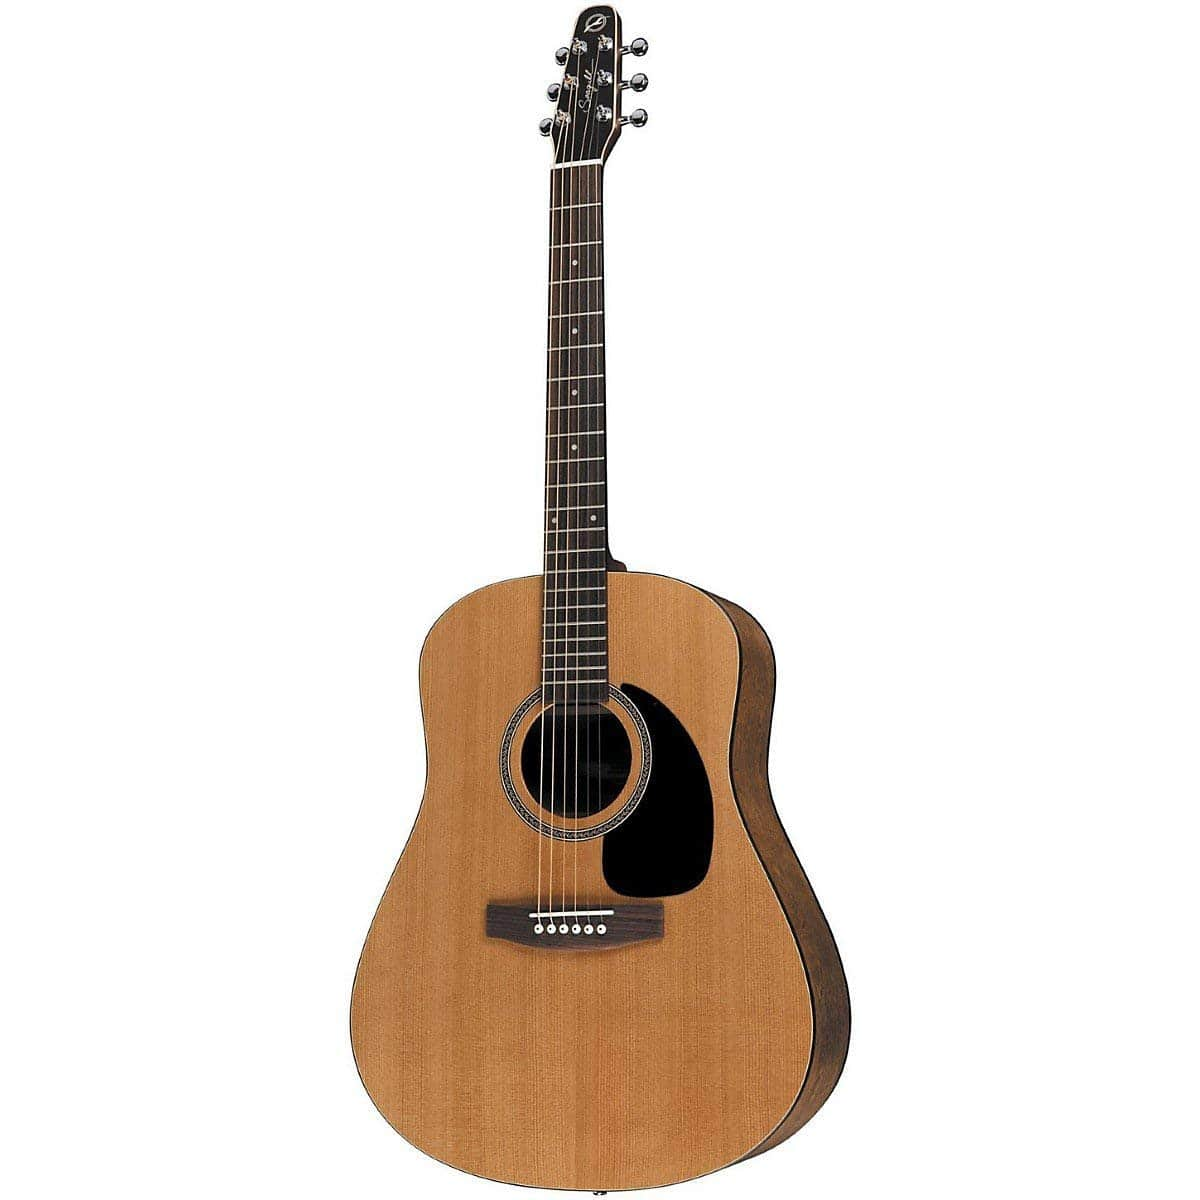 best acoustic guitar featuring Tapered Headstock for precise and stable tuning and great for open tunings